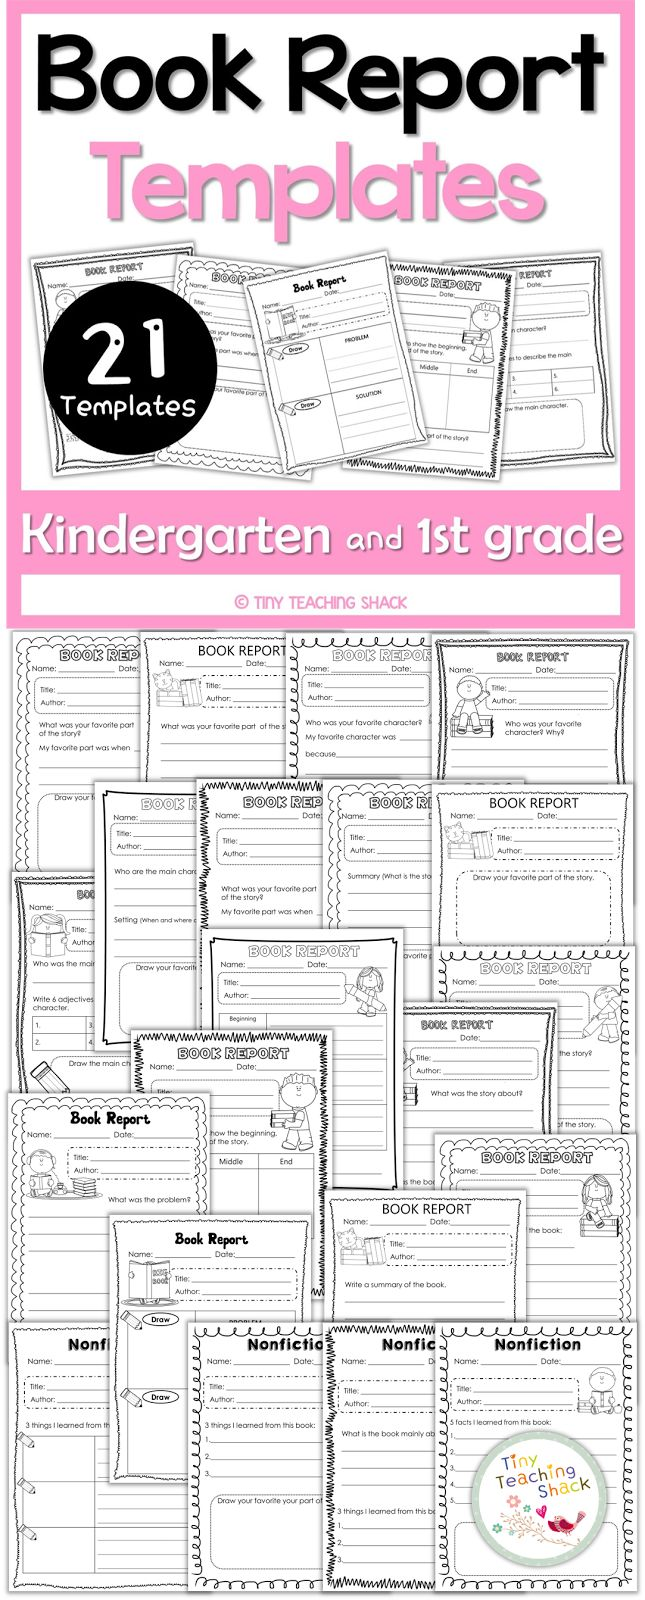 Book Report Templates                                                                                                                                                                                 More